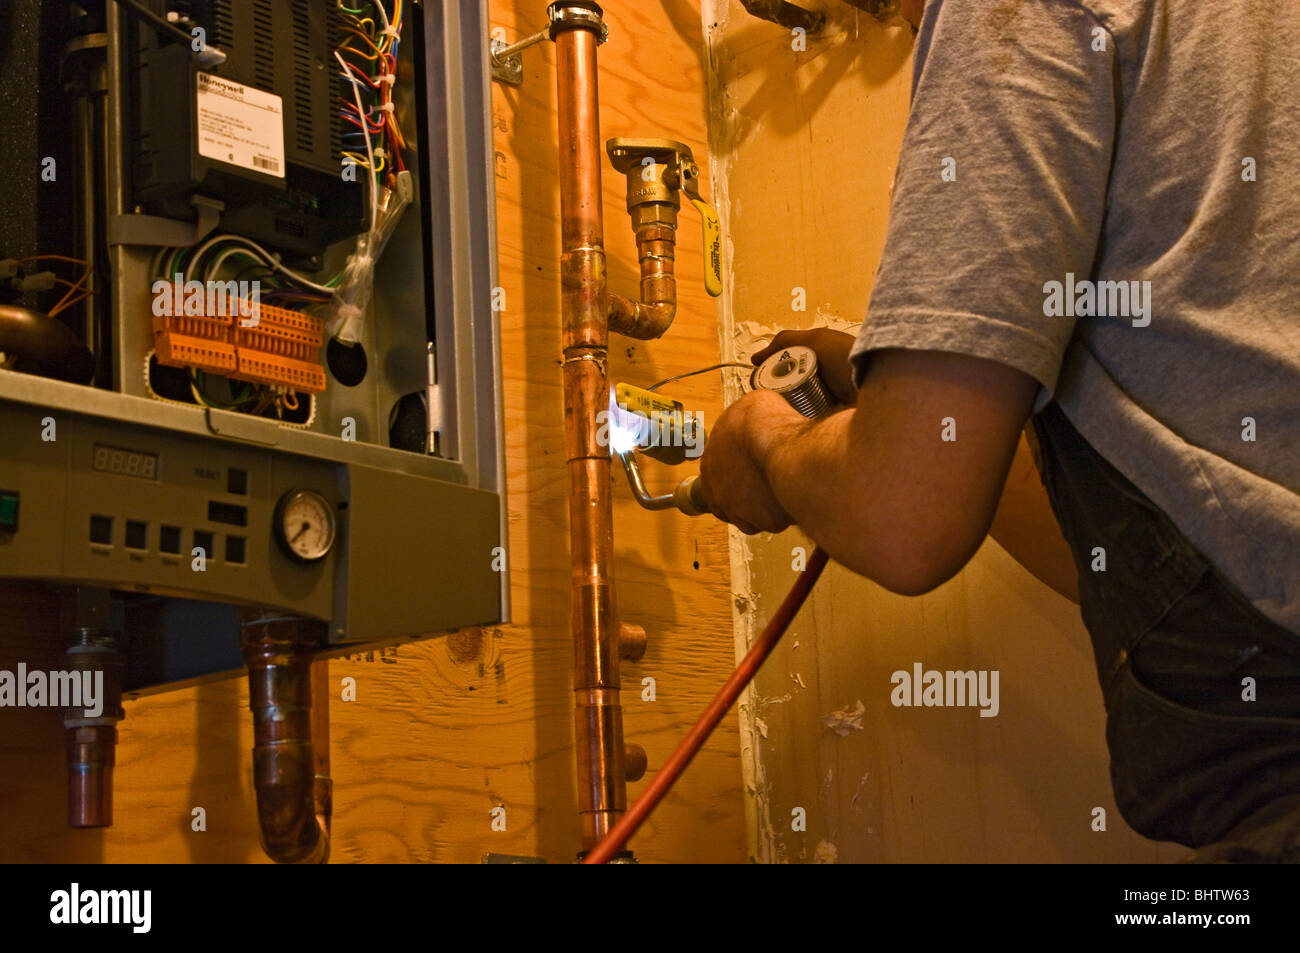 Plumber soldering copper pipes - Stock Image